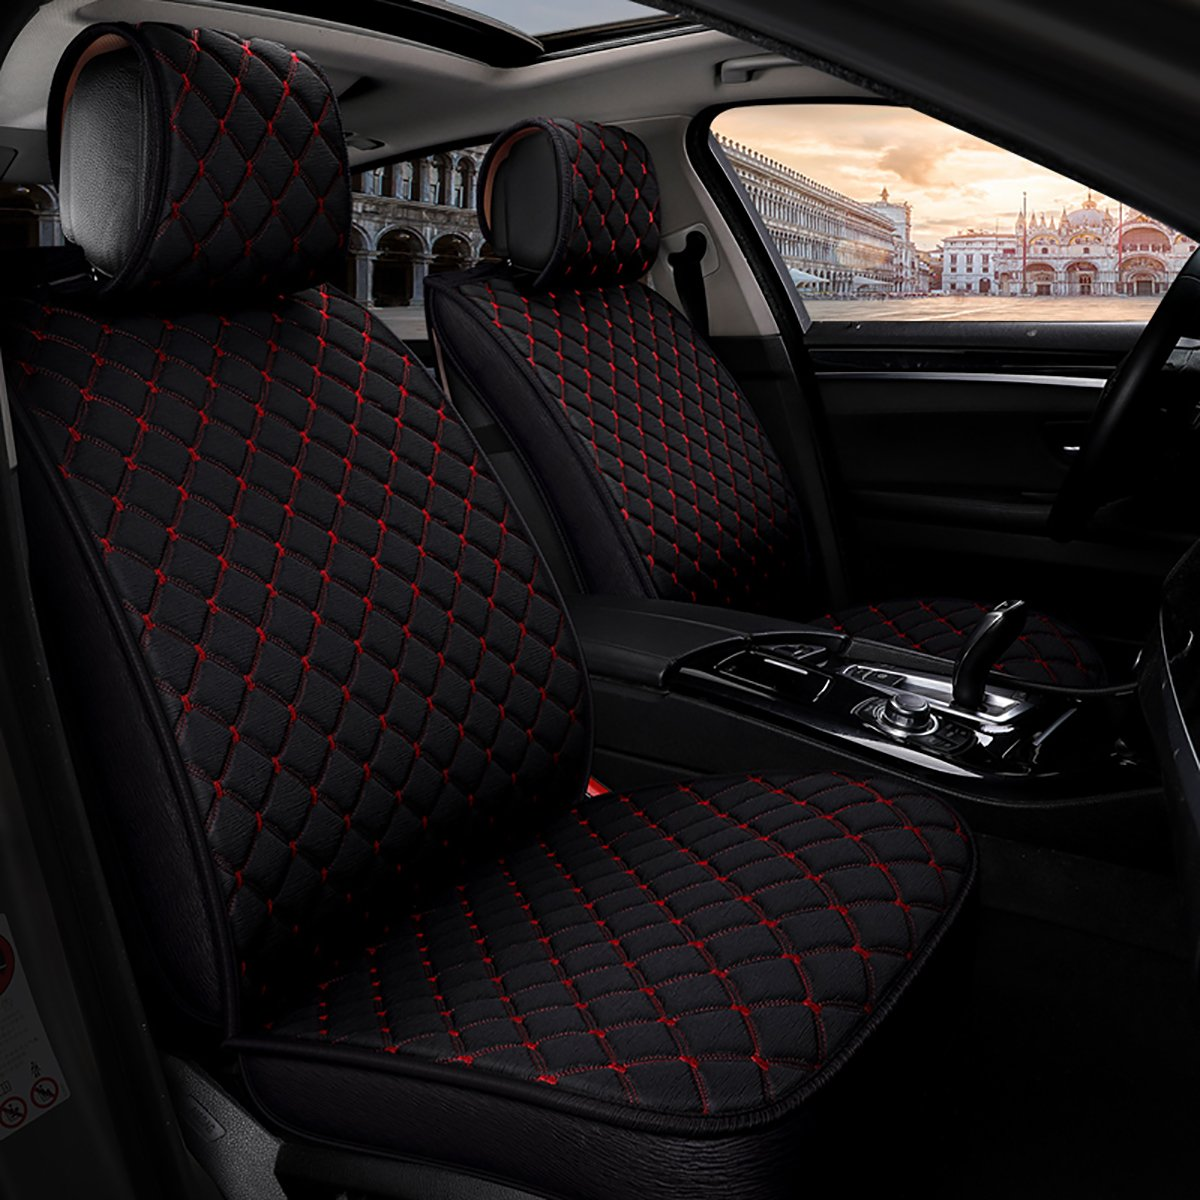 INCH EMPIRE Anti Slip Car Seat Cover Full Set Cloth Universal Fit Front and Back Breathable Dirty Proof Fabric Cushion-Adjustable Bench for 95% Types of 5 Seats Cars(Black with Red Stitch Grid)